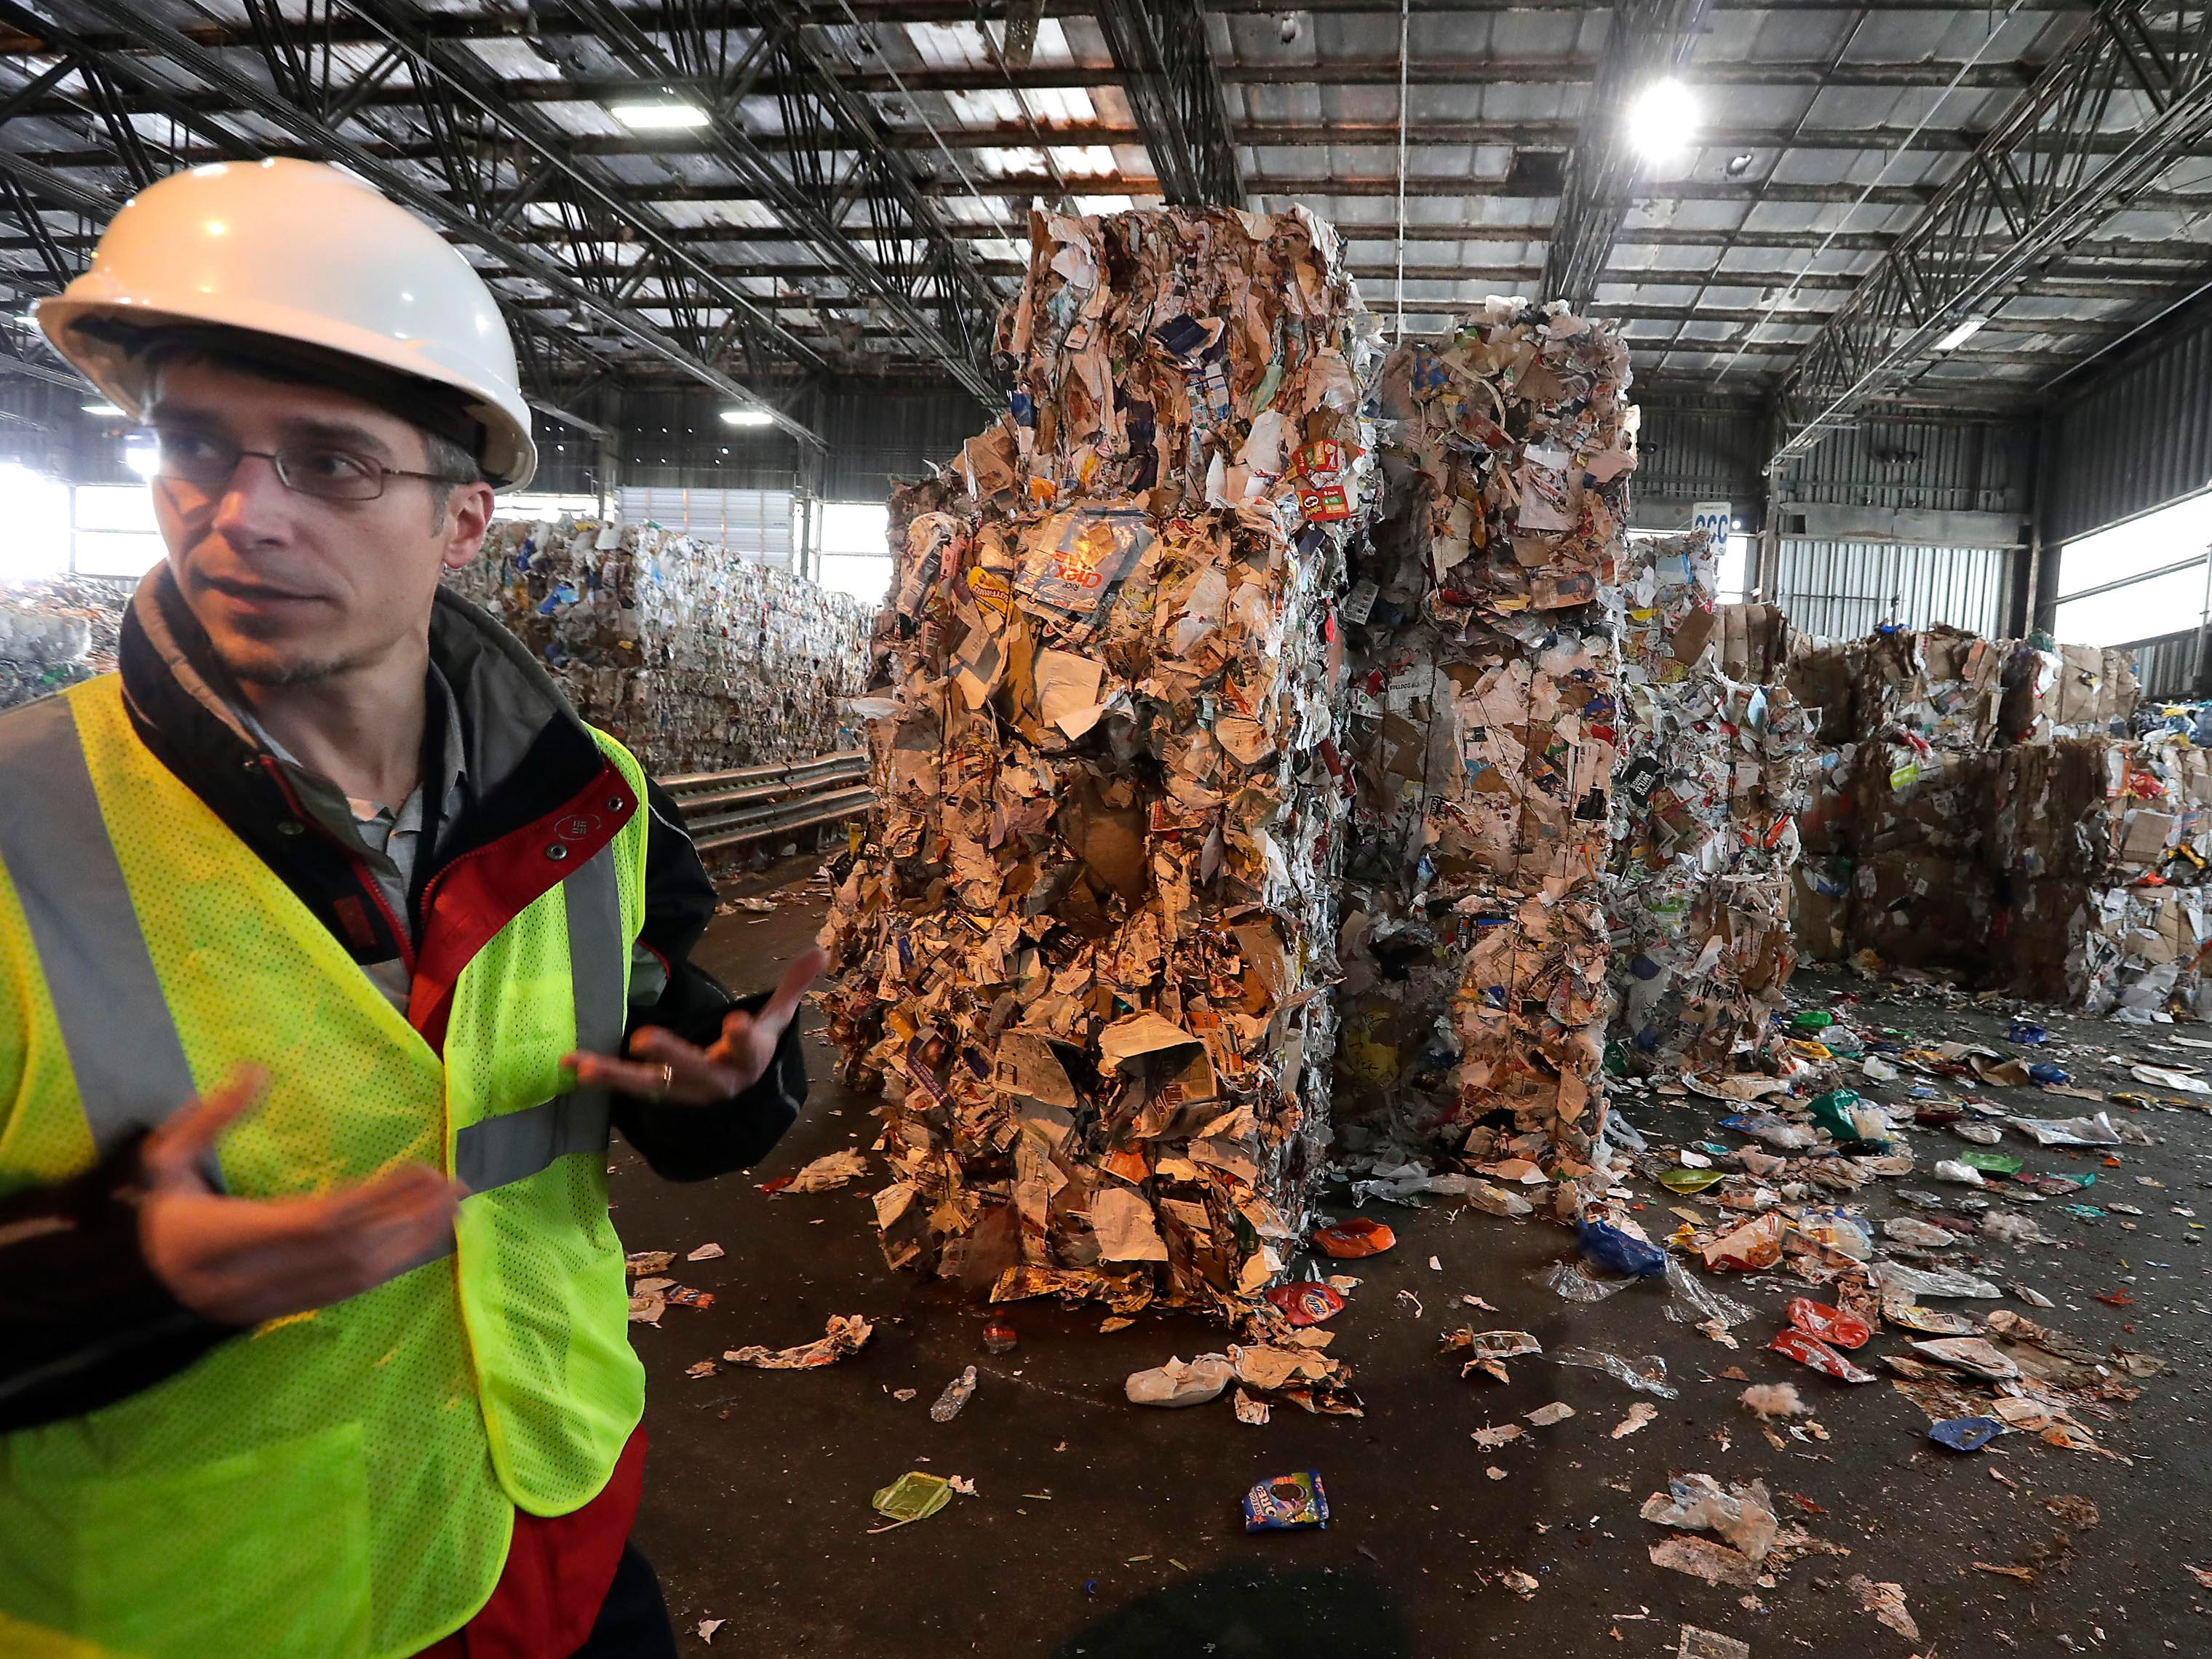 Rick Meyers, sanitation services manager at the Menomonee Valley recycling center jointly owned by the City of Milwaukee and 27 communities in Waukesha County, explains that recyclers  are facing rising costs and demands for a cleaner waste stream after China announced in January 2018 that it was effectively banning recycled waste from countries, including the U.S. because material was too dirty.